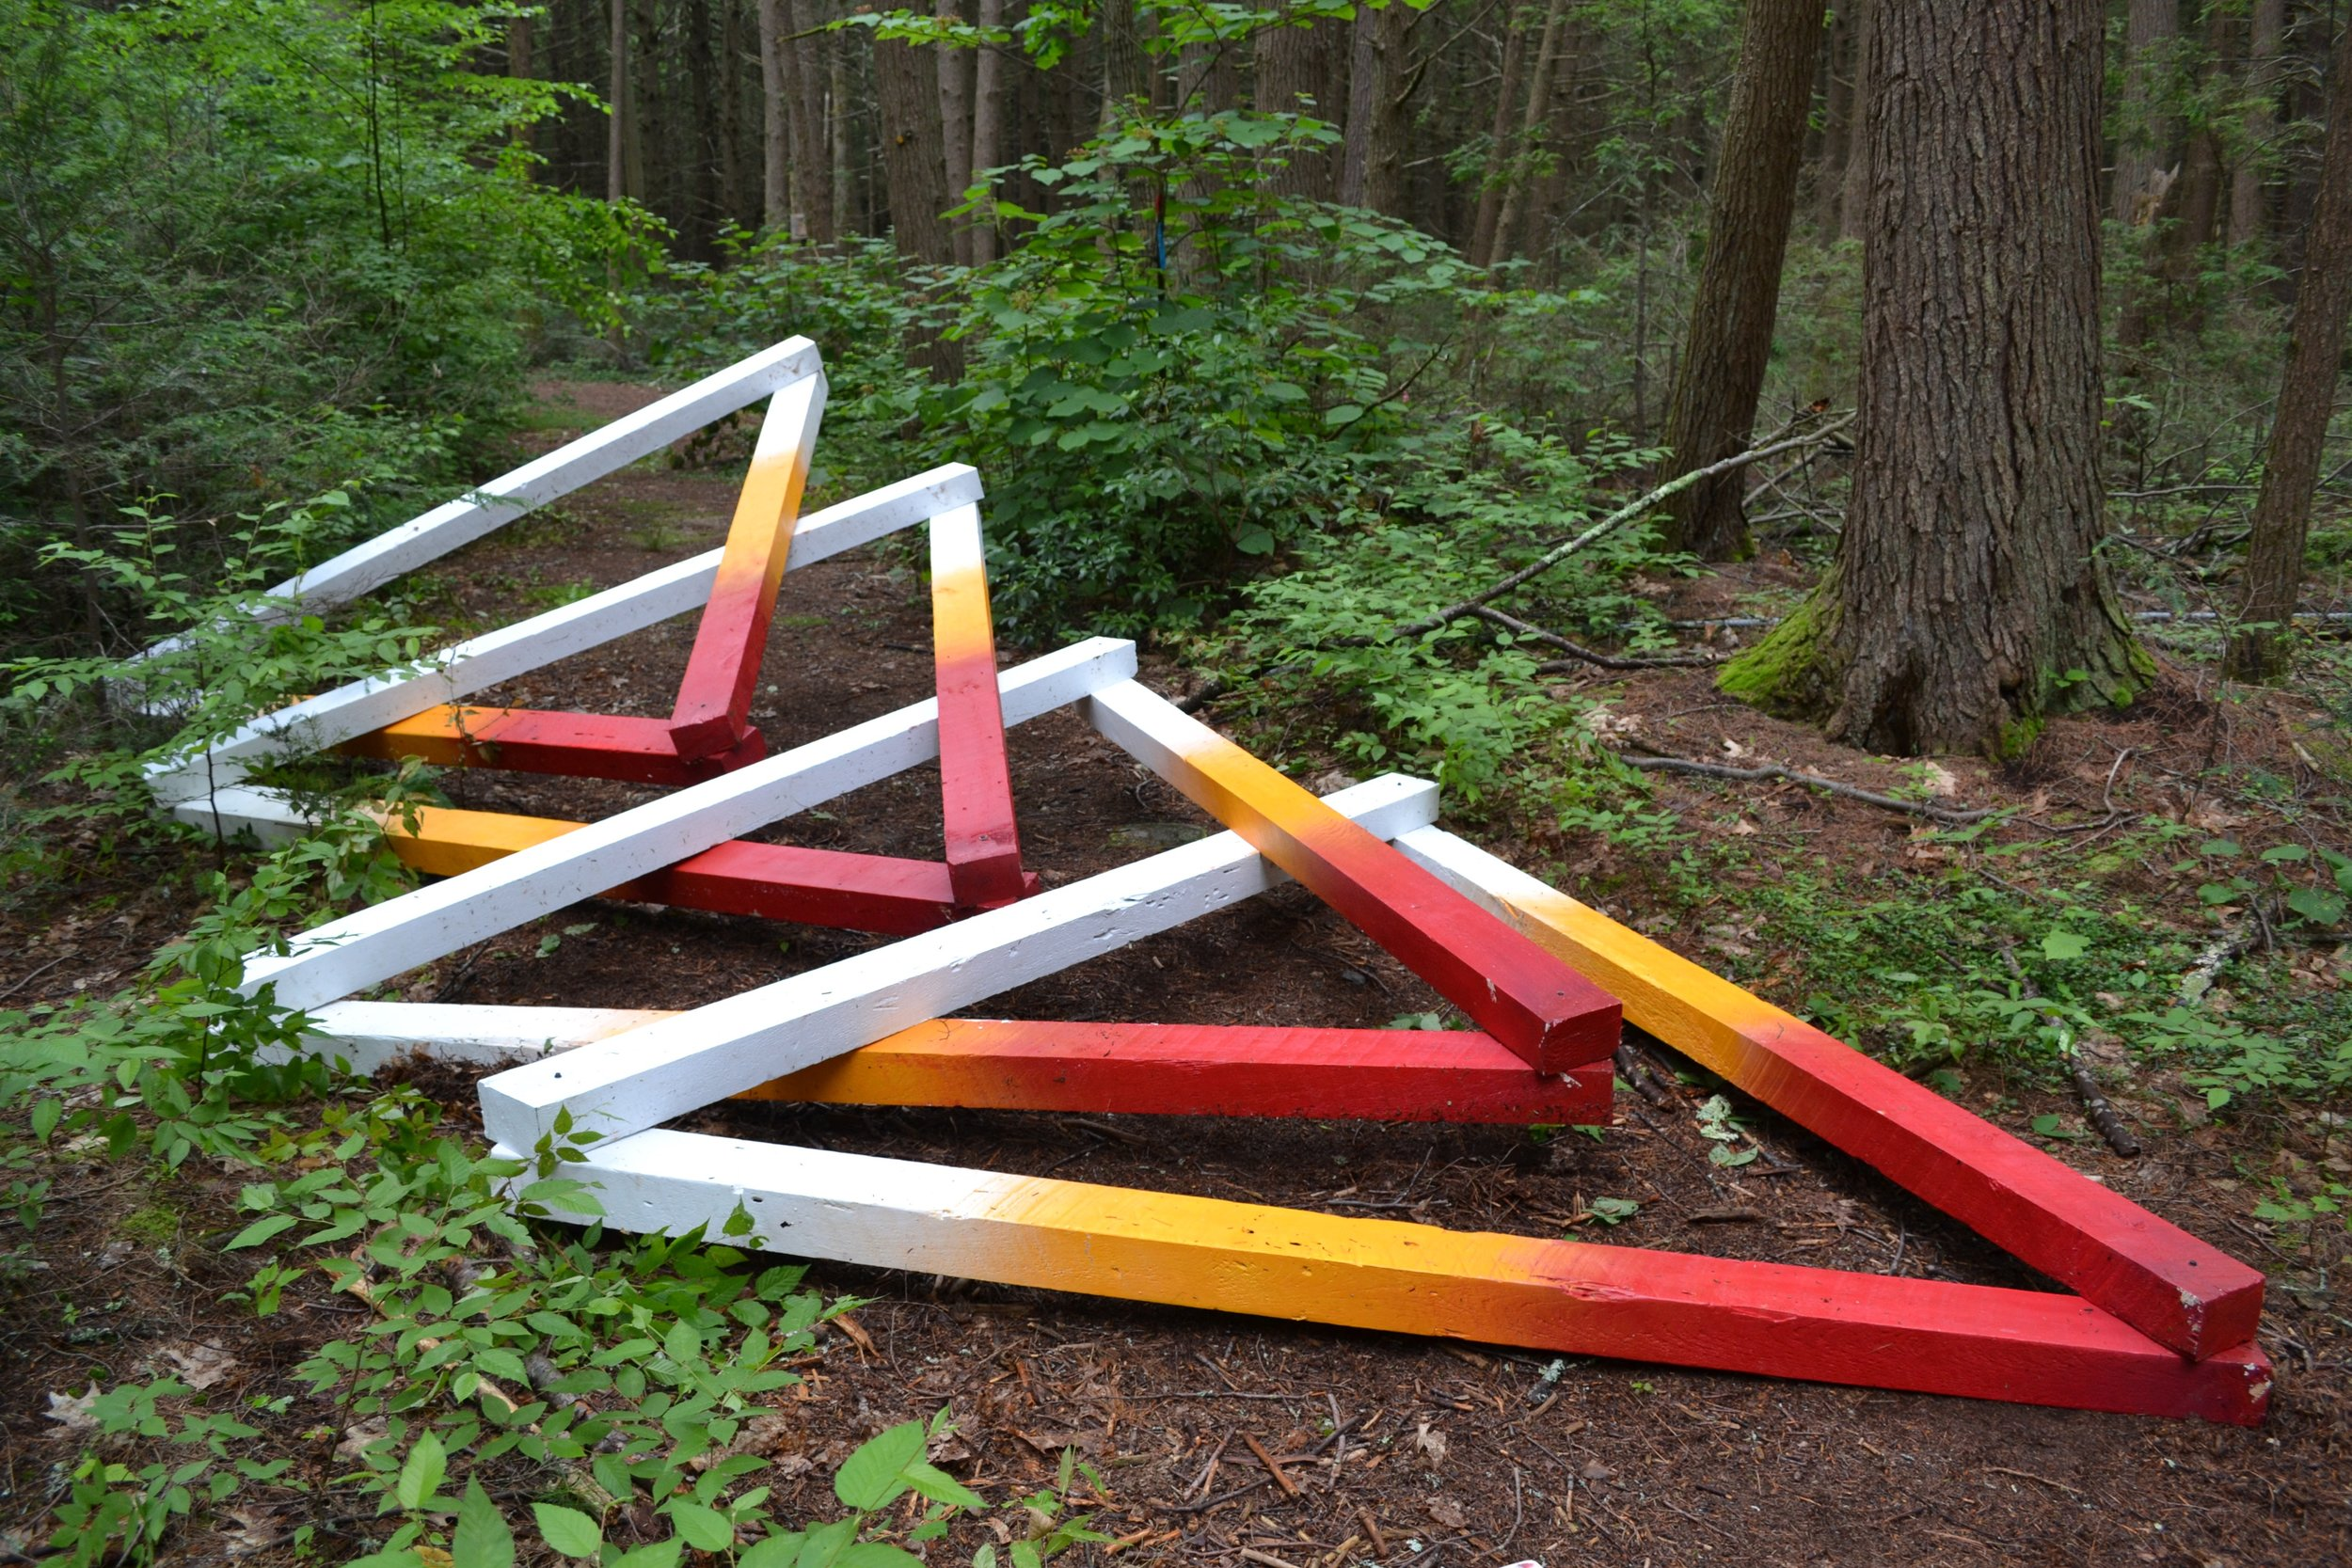 """Fast Forward Futures,"" Hemlock Hospice installation at Harvard Forest, wood, acrylic, and hardware, 4 x 8 x 22 feet, 2017. Collaborators: David Buckley Borden, Jack Byers, Salua Rivero, and Dr. Aaron Ellison."